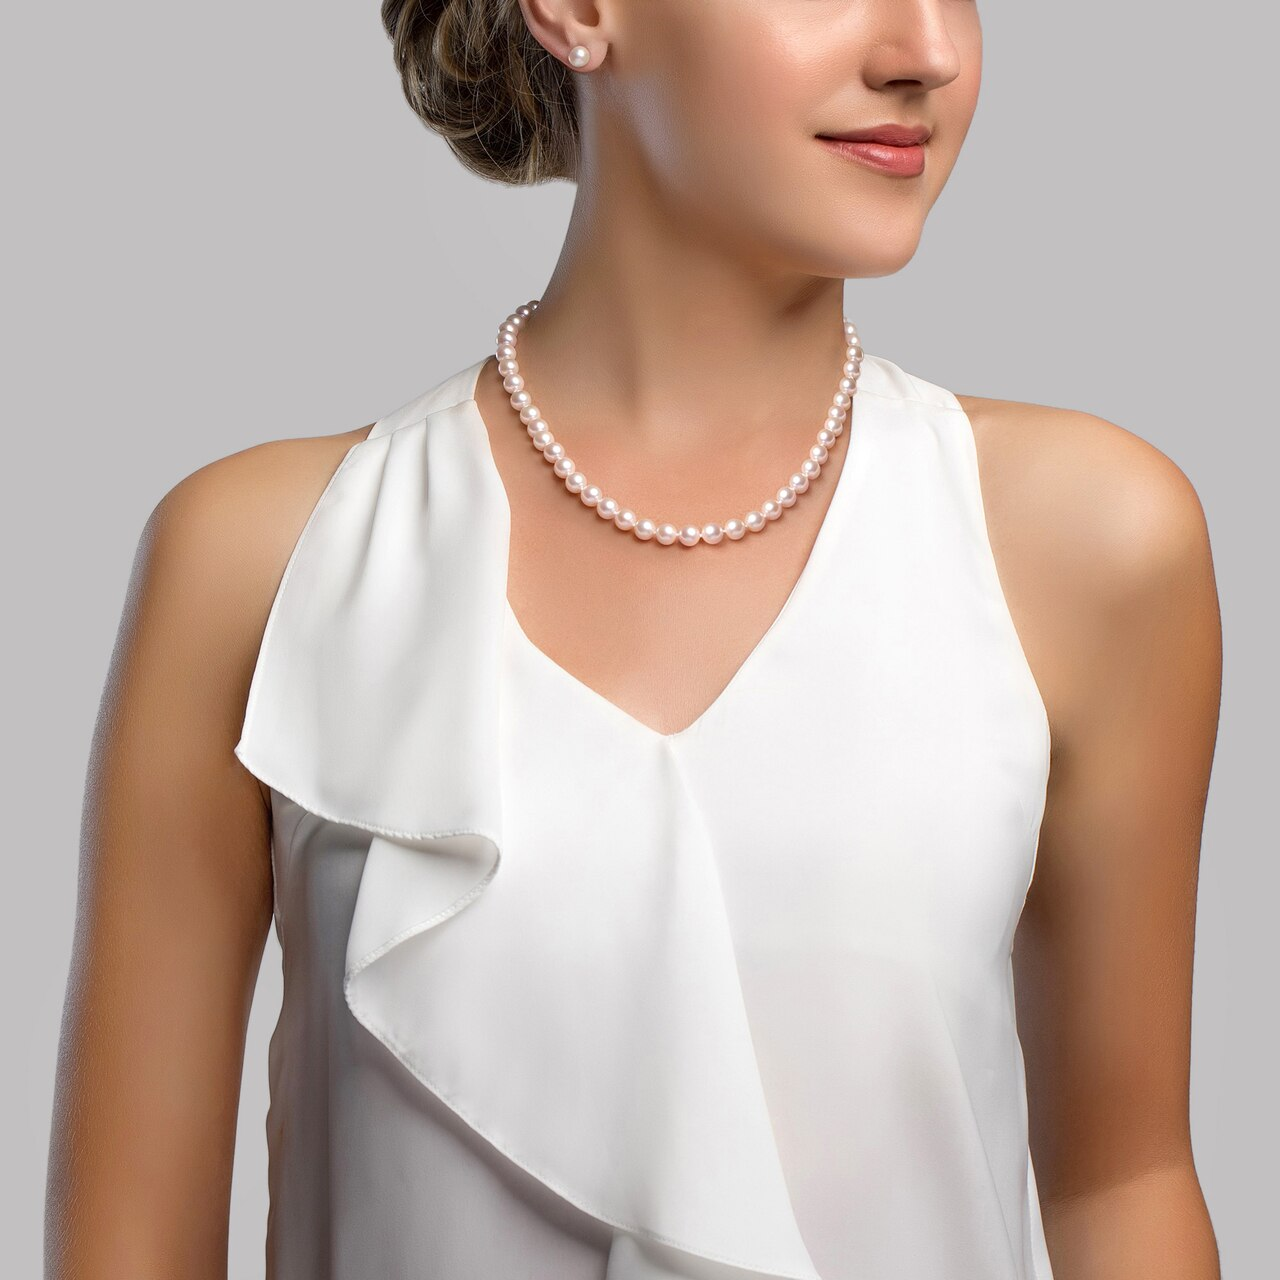 This classic necklace, bracelet and earring set features 7.0-8.0mm Freshwater pearls